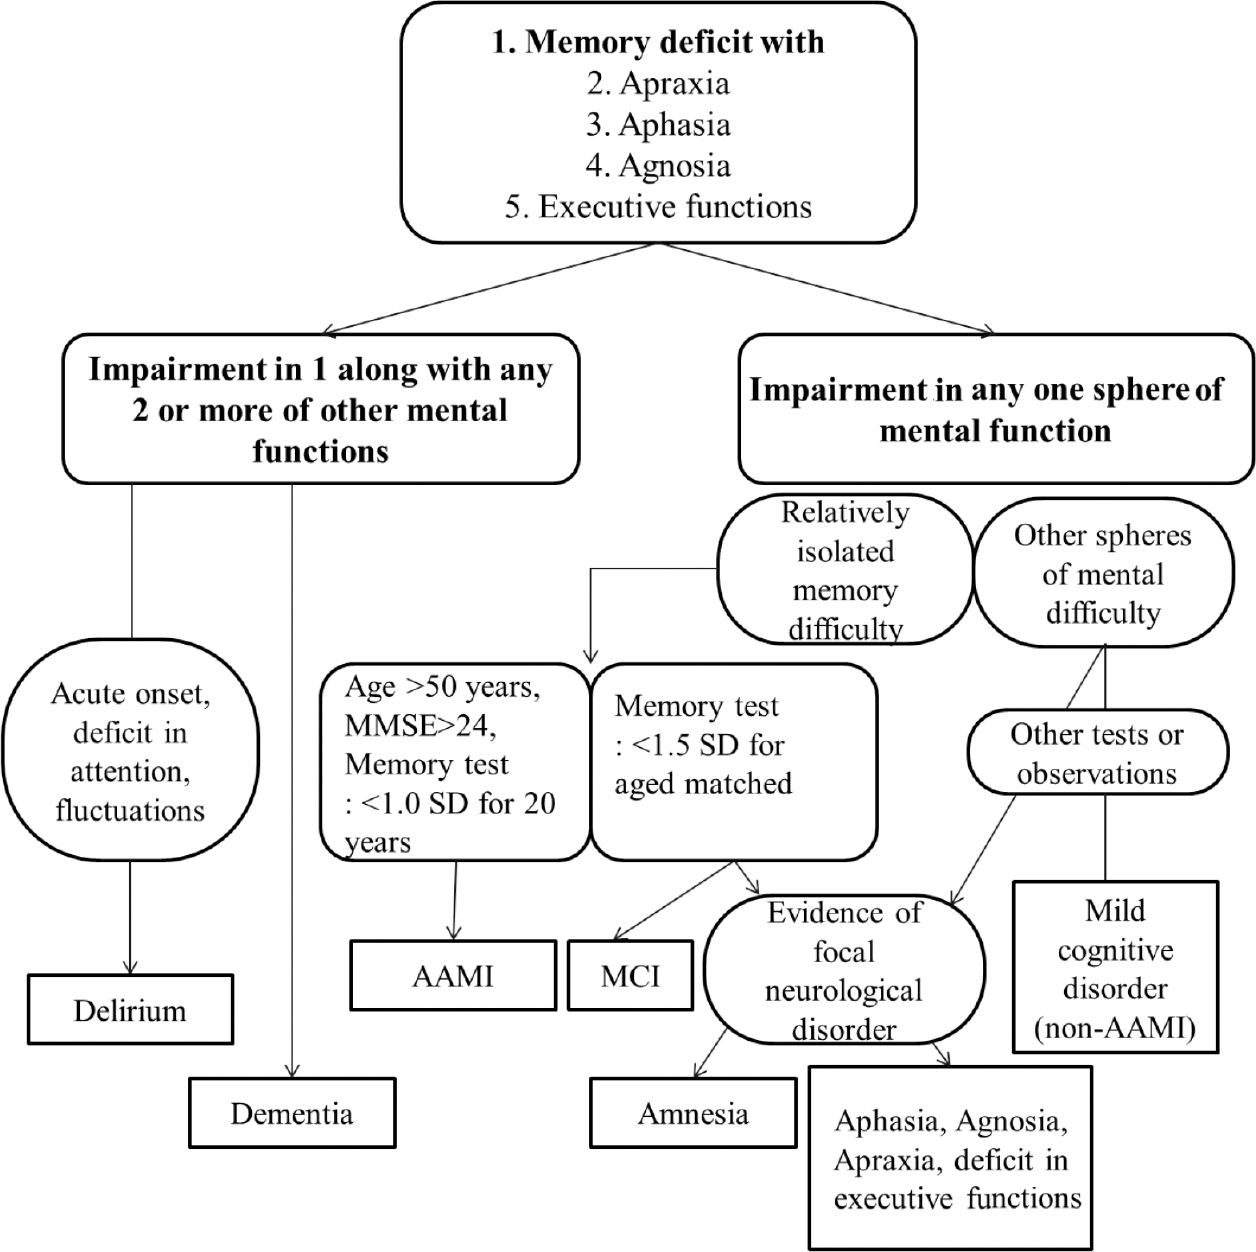 Differential diagnosis for cognitive decline in elderly